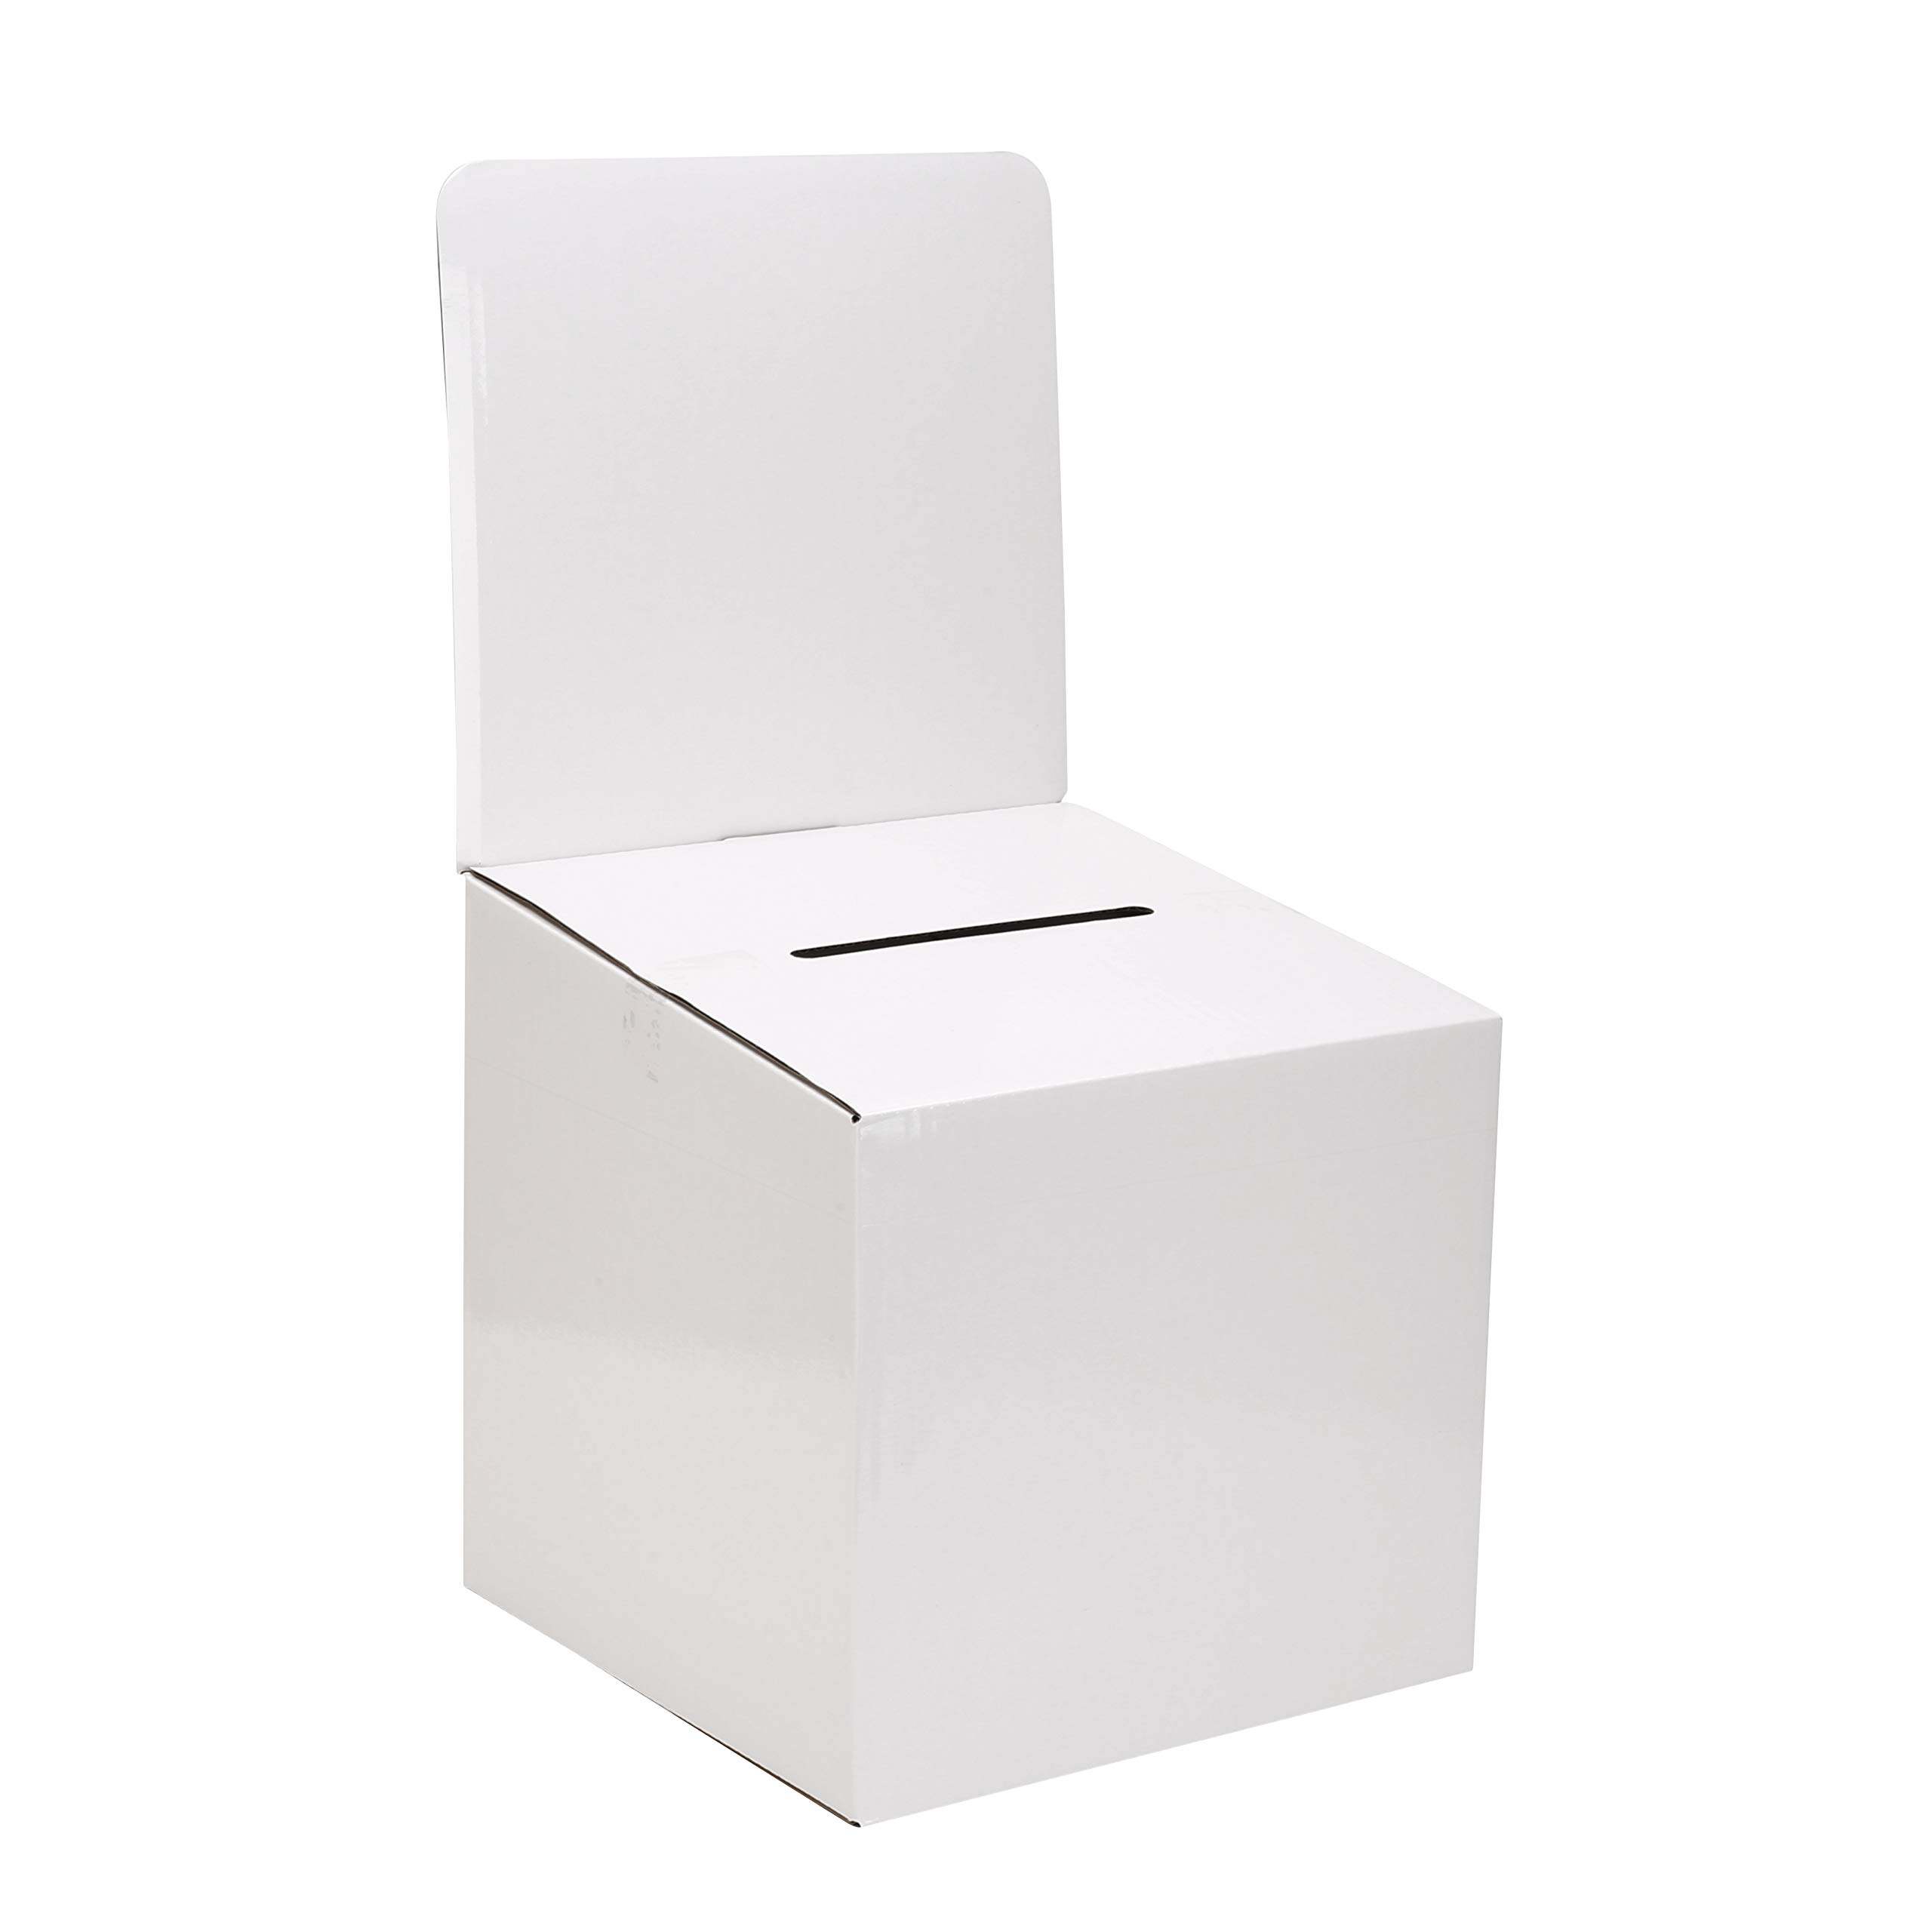 MCB - Medium Cardboard Box - Ballot Box - Suggestion Box - Raffle Box - Ticket Box - with Removable Header for Tabletop Use (10 Pack) by My Charity Boxes